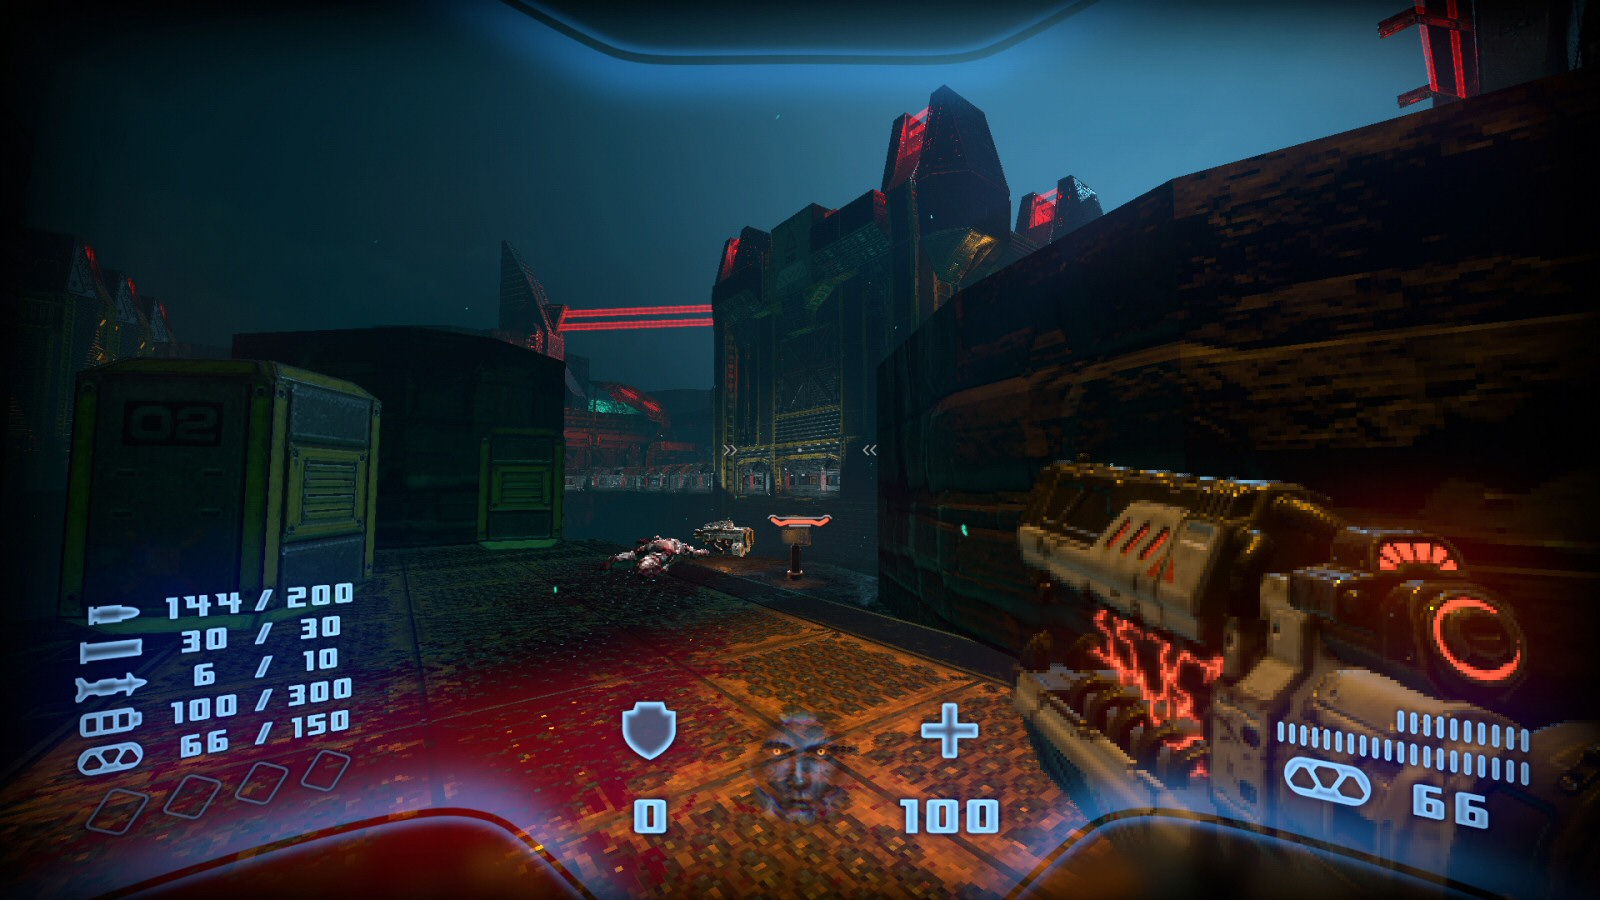 This is some classic Valve-style level design. At the start of the level there's a weapon off to one side. The player naturally moves to pick it up. Then the door in the distance opens to reveal some snipers. This makes sure you're looking in the right direction so you understand what's happening.